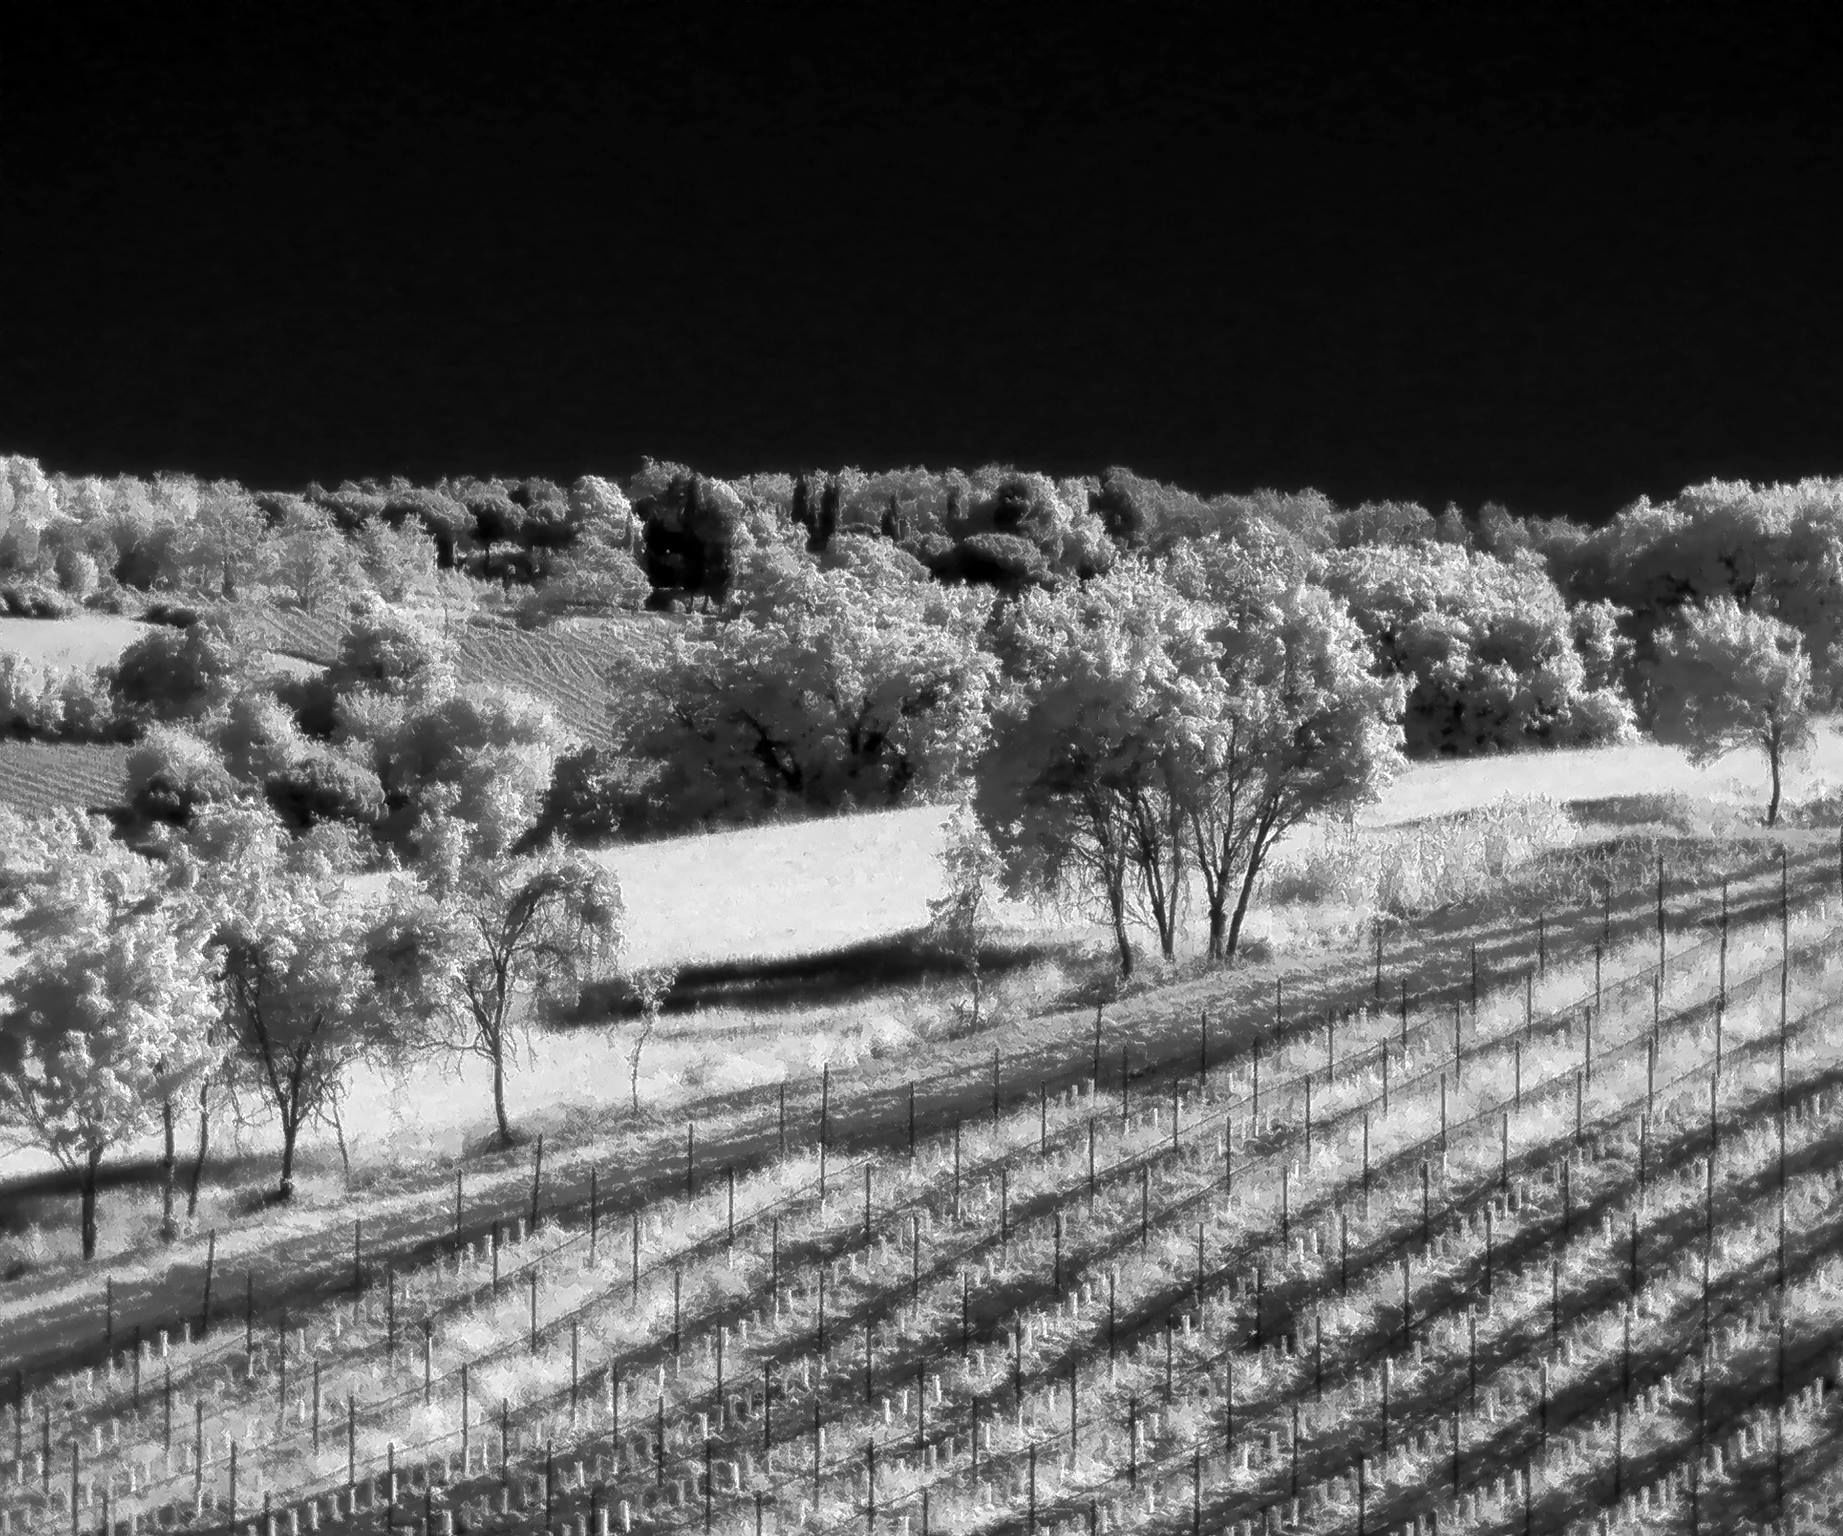 Cheap Infrared Photography